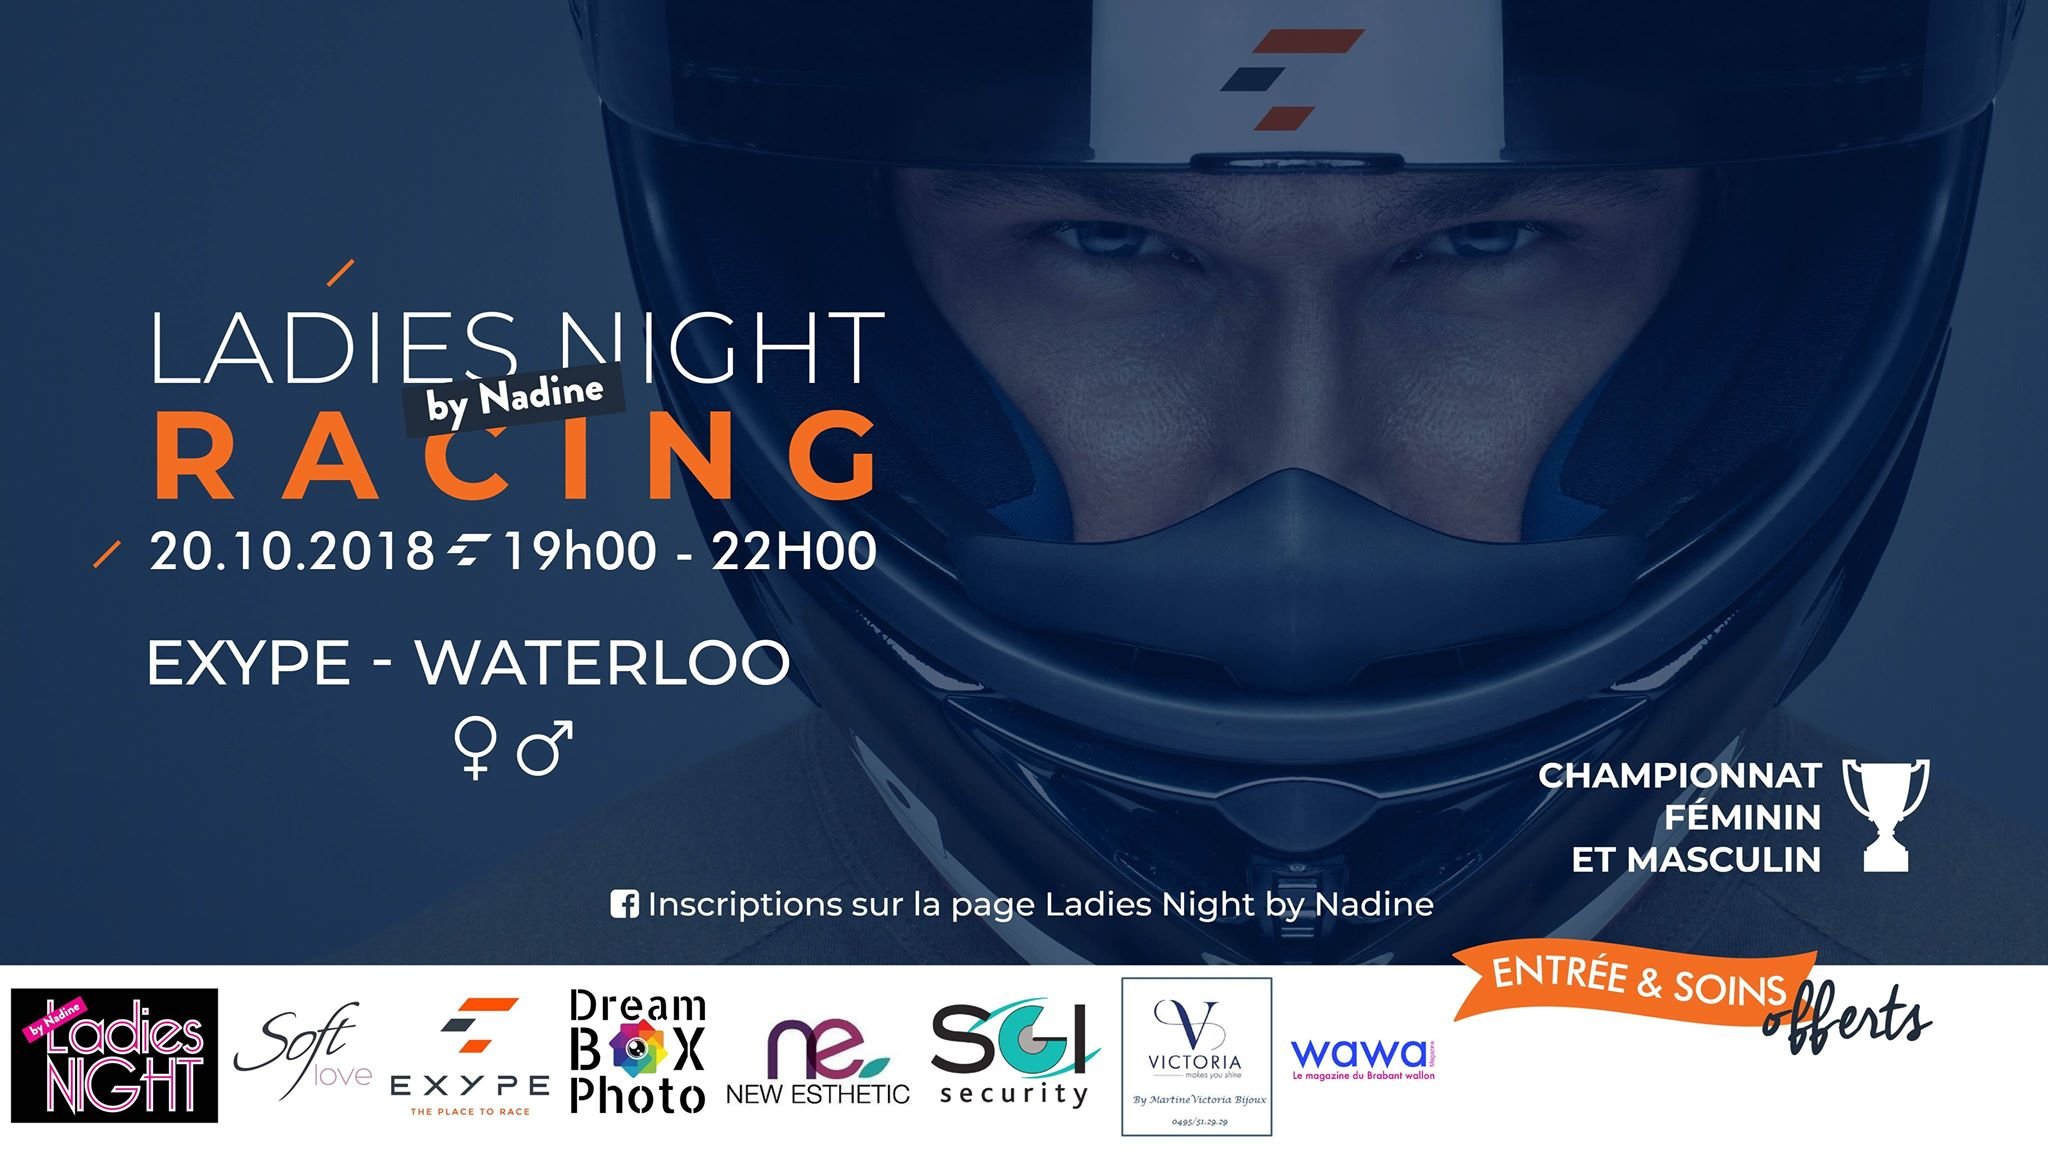 LADIES RACING NIGHT BY NADINE (Video)